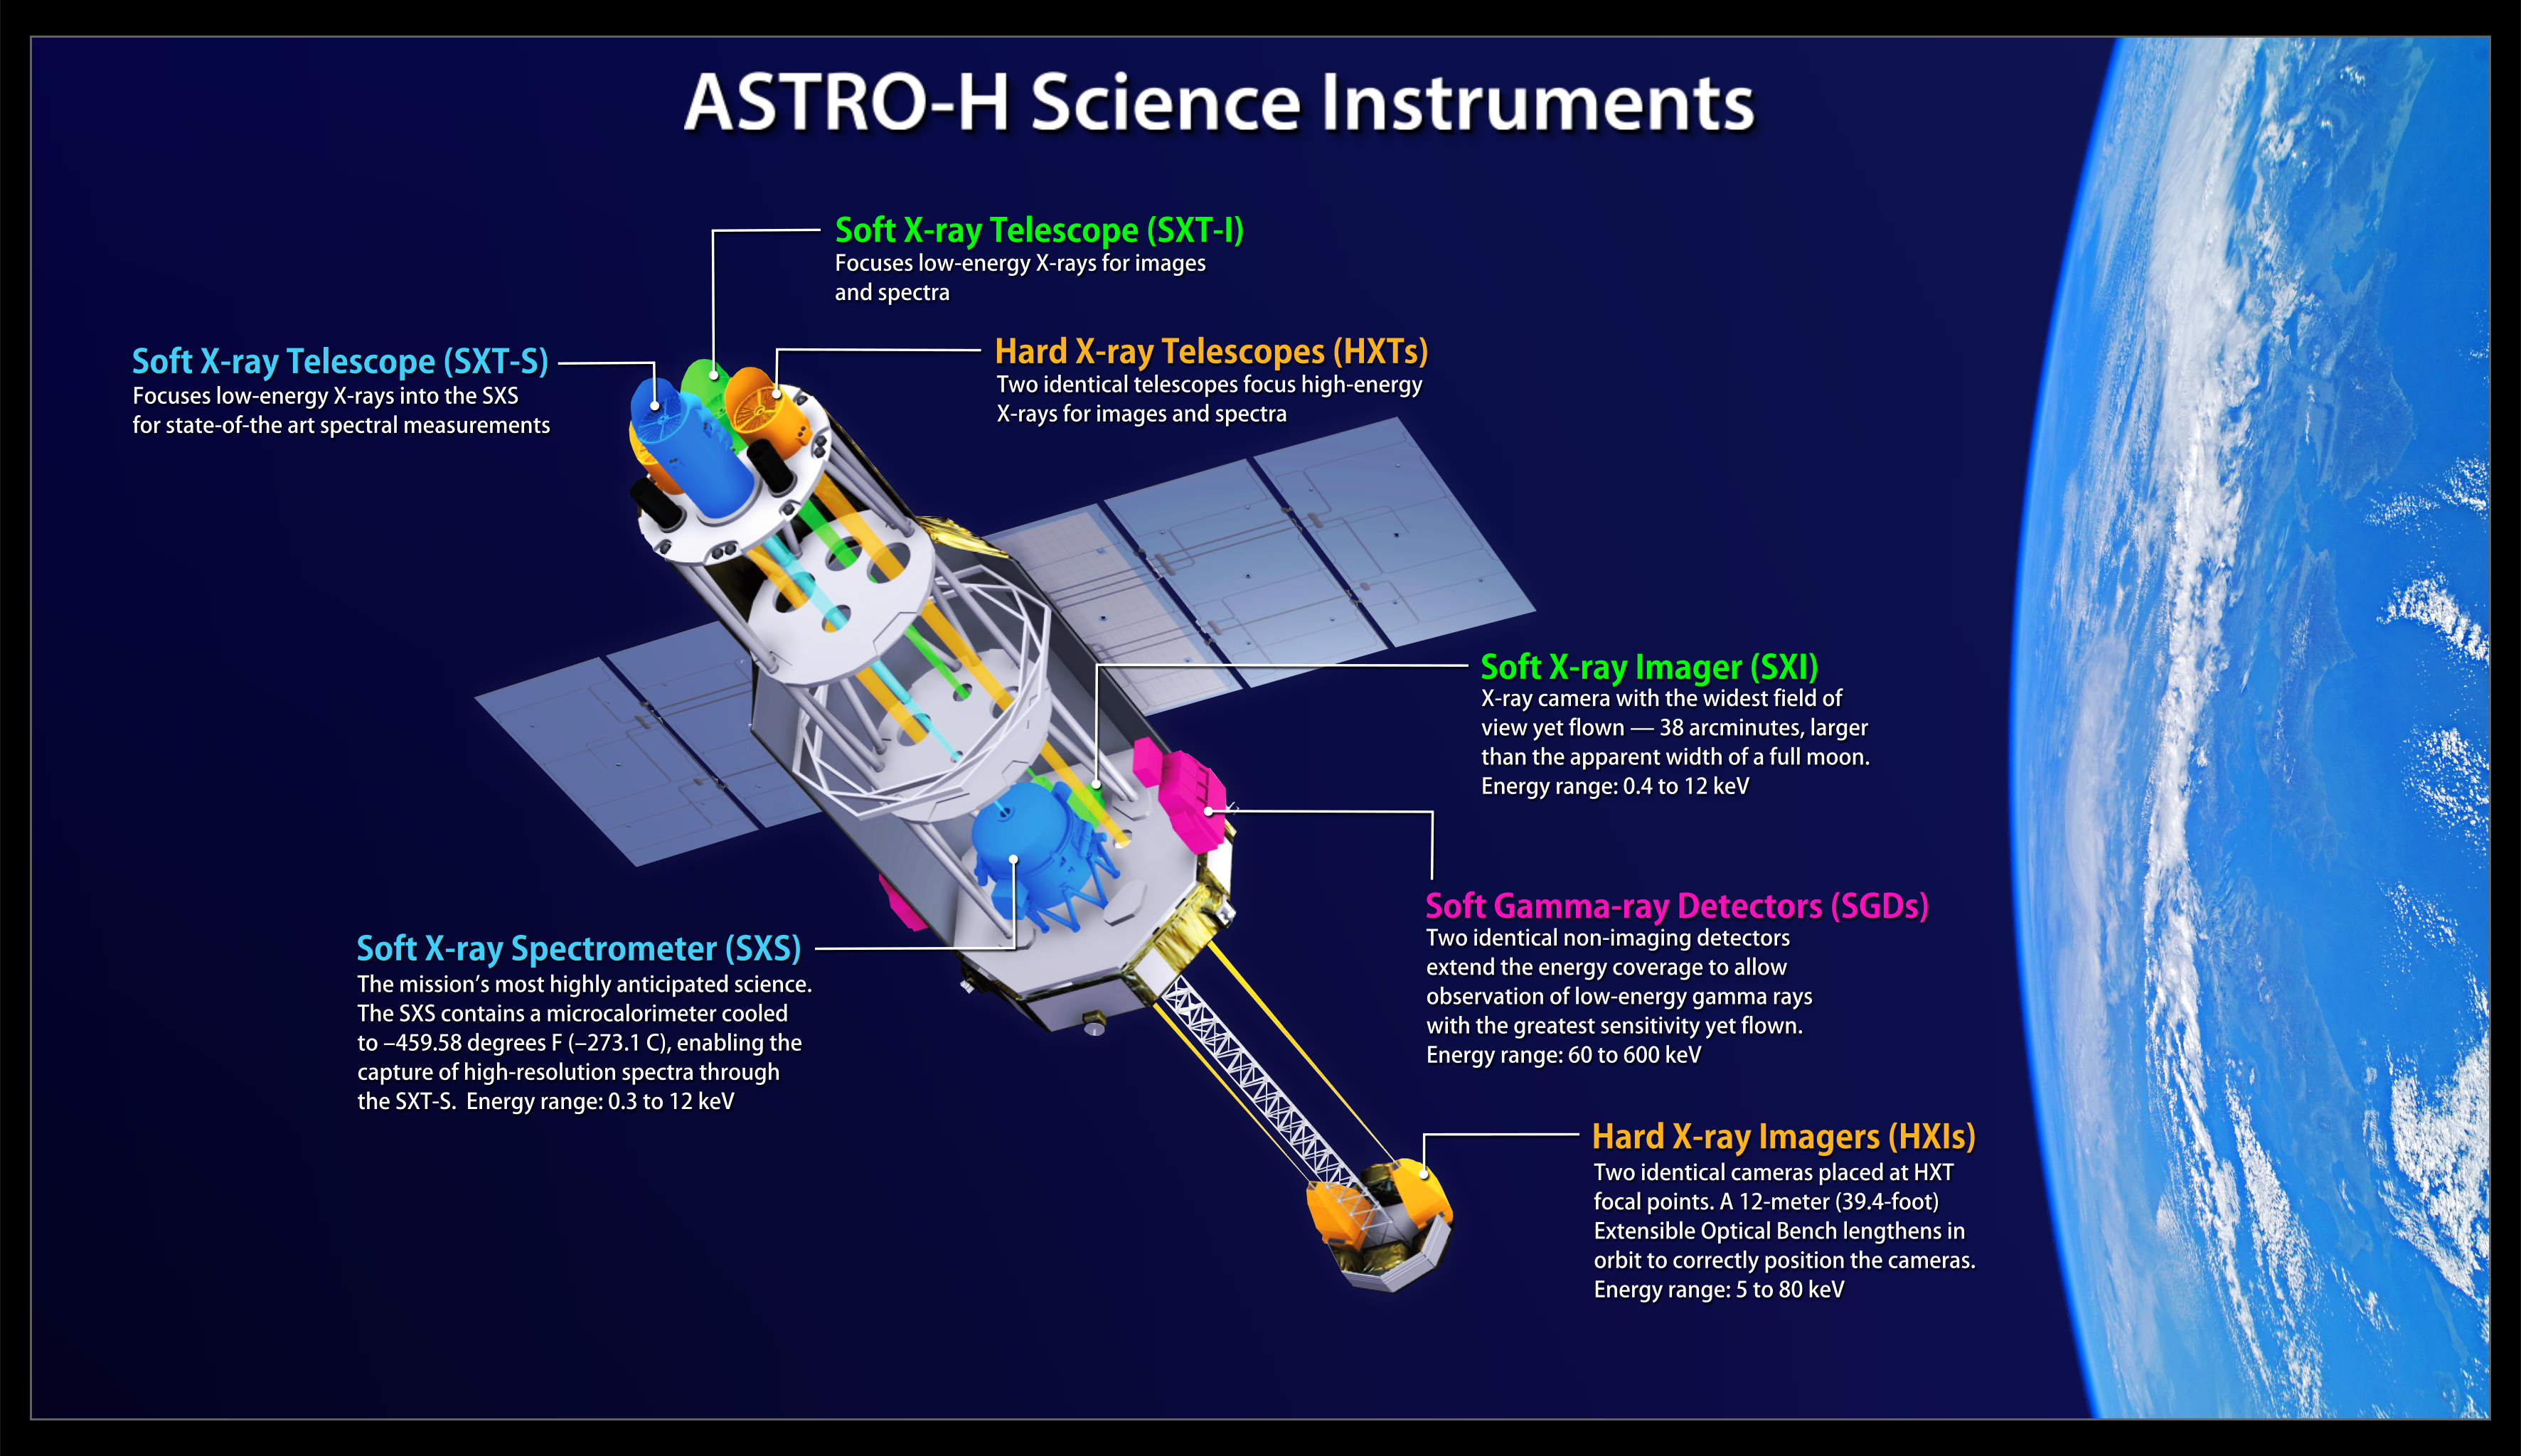 ASTRO-H Science Instruments